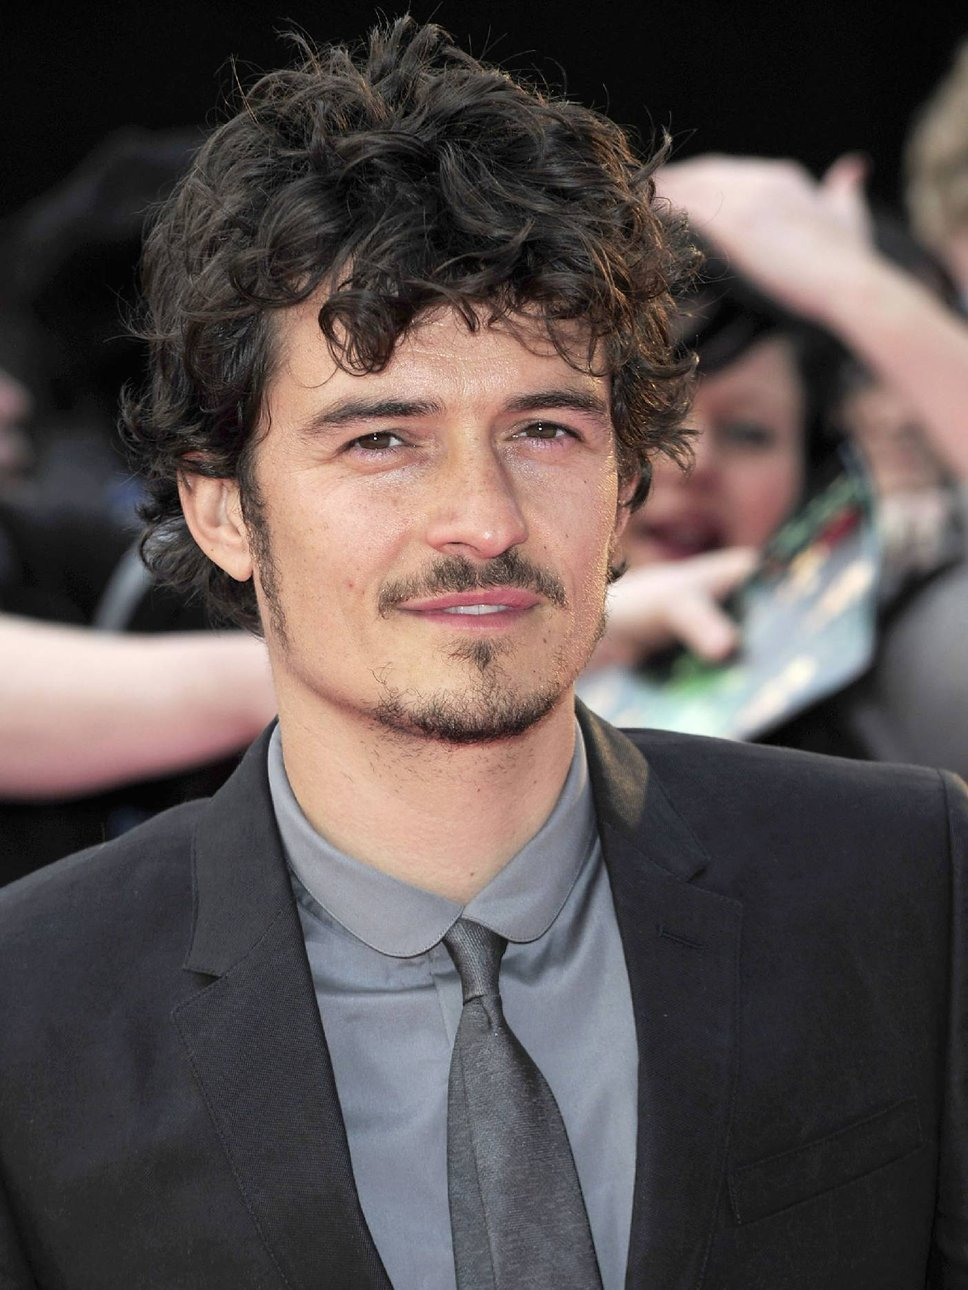 The Best Hairstyles For Men Orlando Bloom Hair Blockbuster Star Pictures